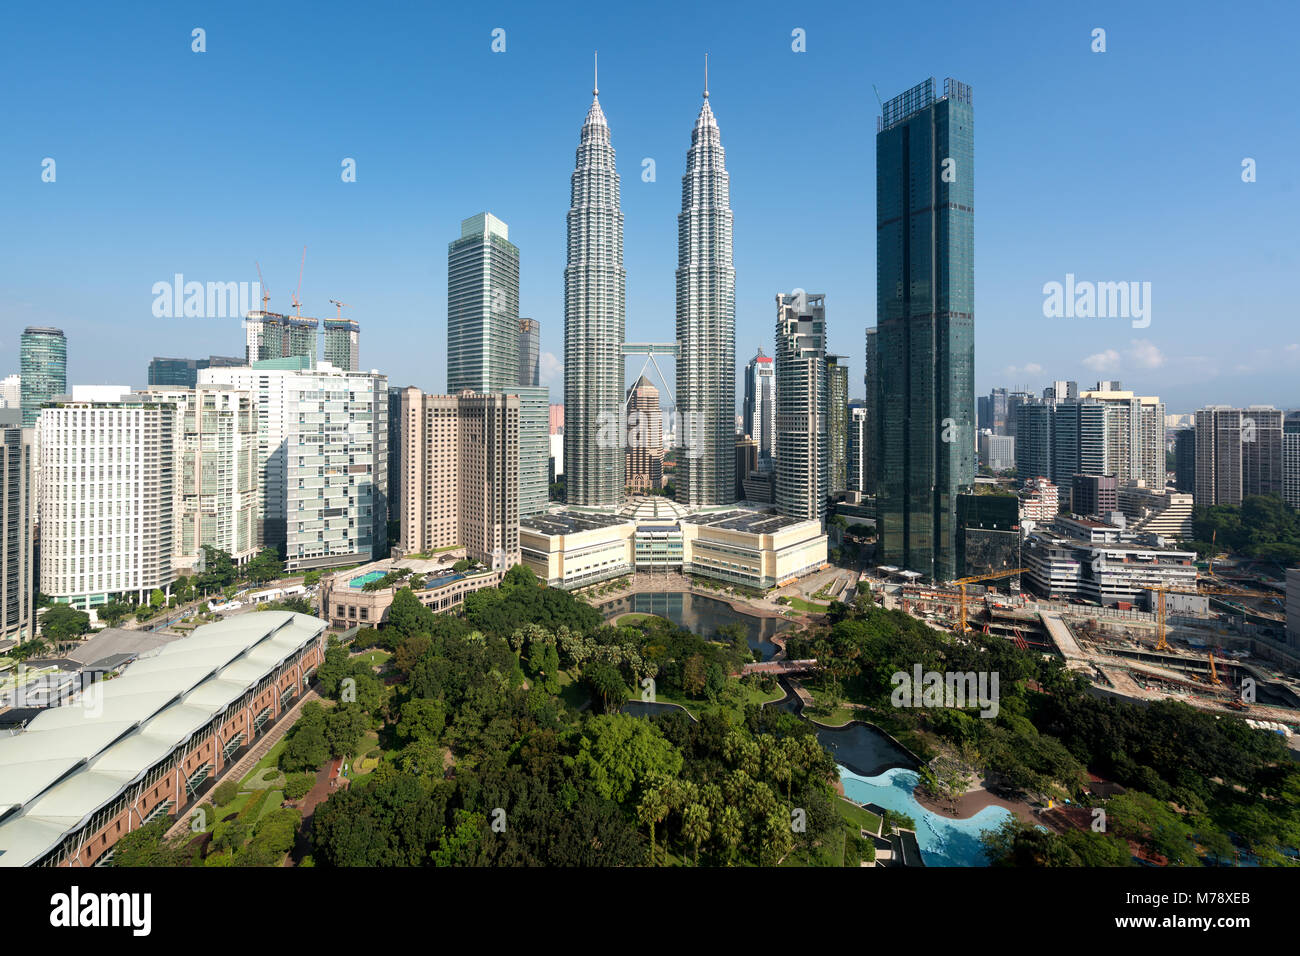 Kuala Lumpur city skyline and skyscrapers building at business district downtown in Kuala Lumpur, Malaysia. Asia. Stock Photo